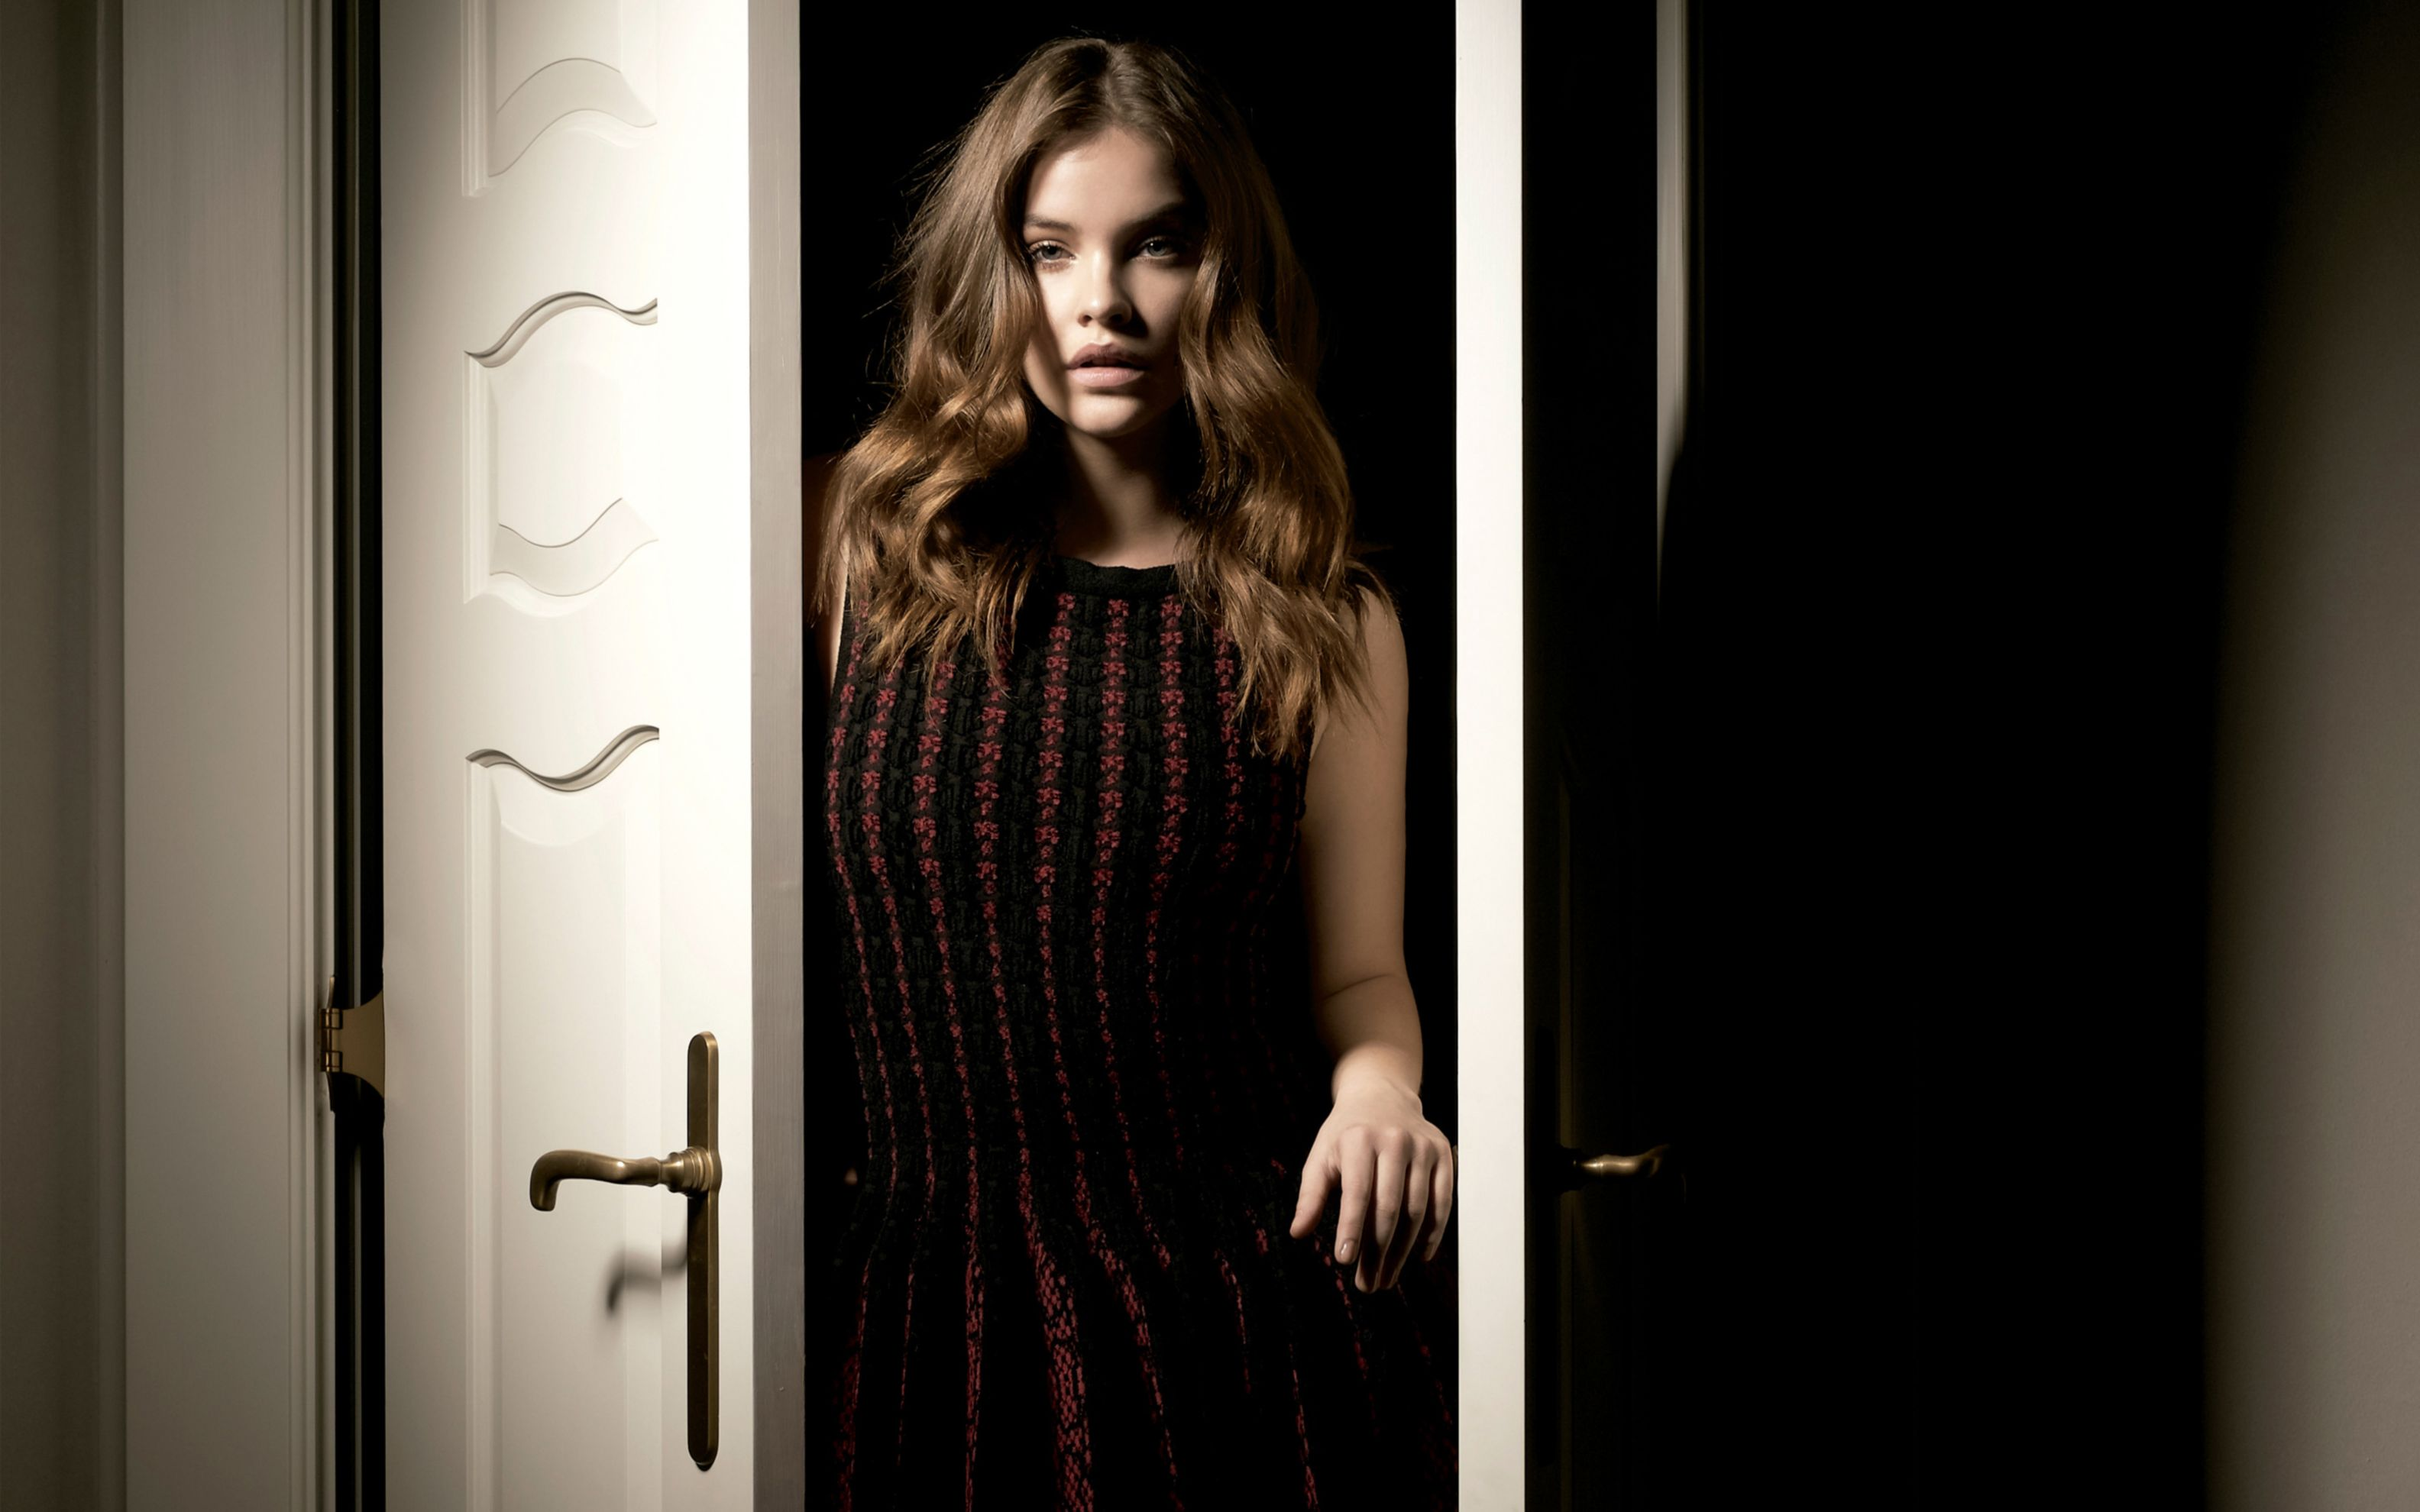 Download free HD Barbara Palvin Fashion Model Wide Wallpaper, image